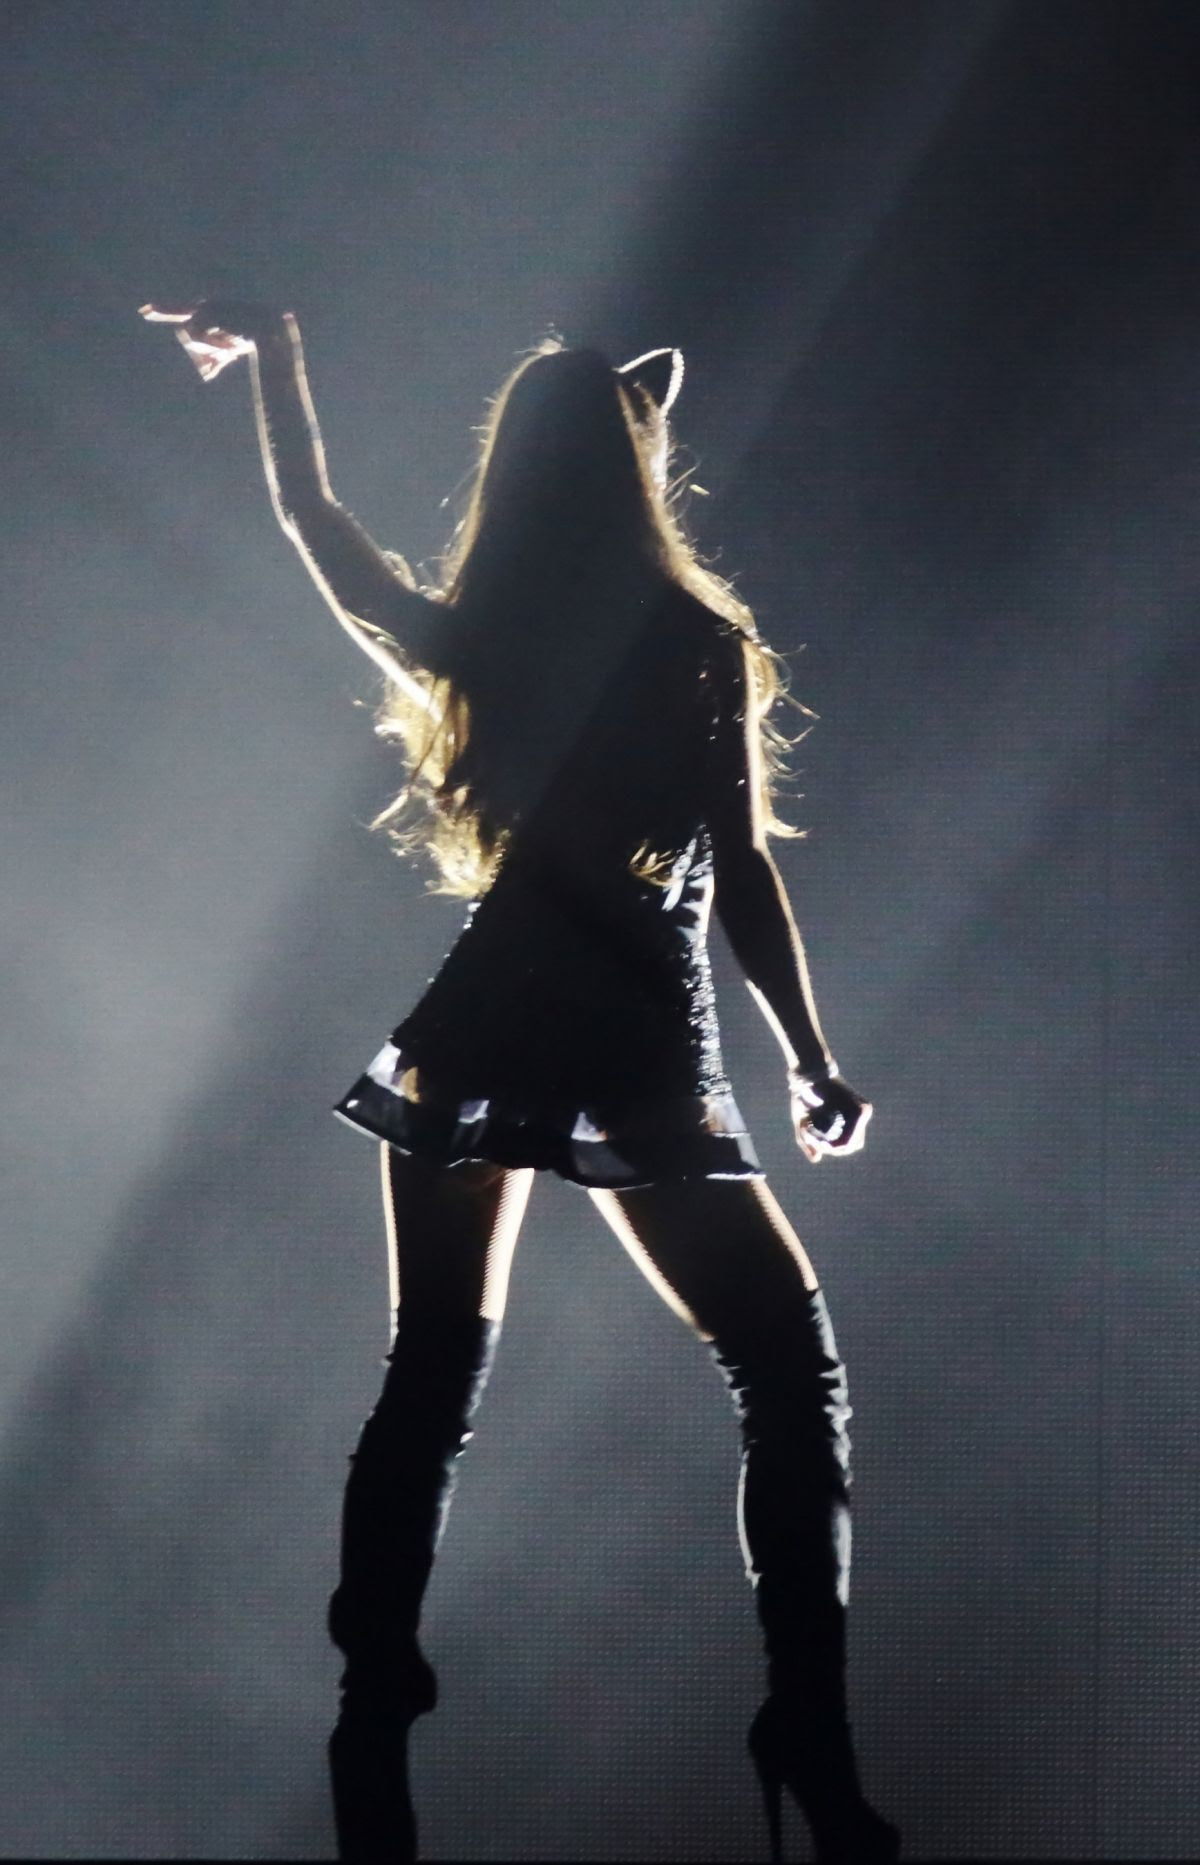 ARIANA GRANDE Performs at The Honeymoon Tour in Milan